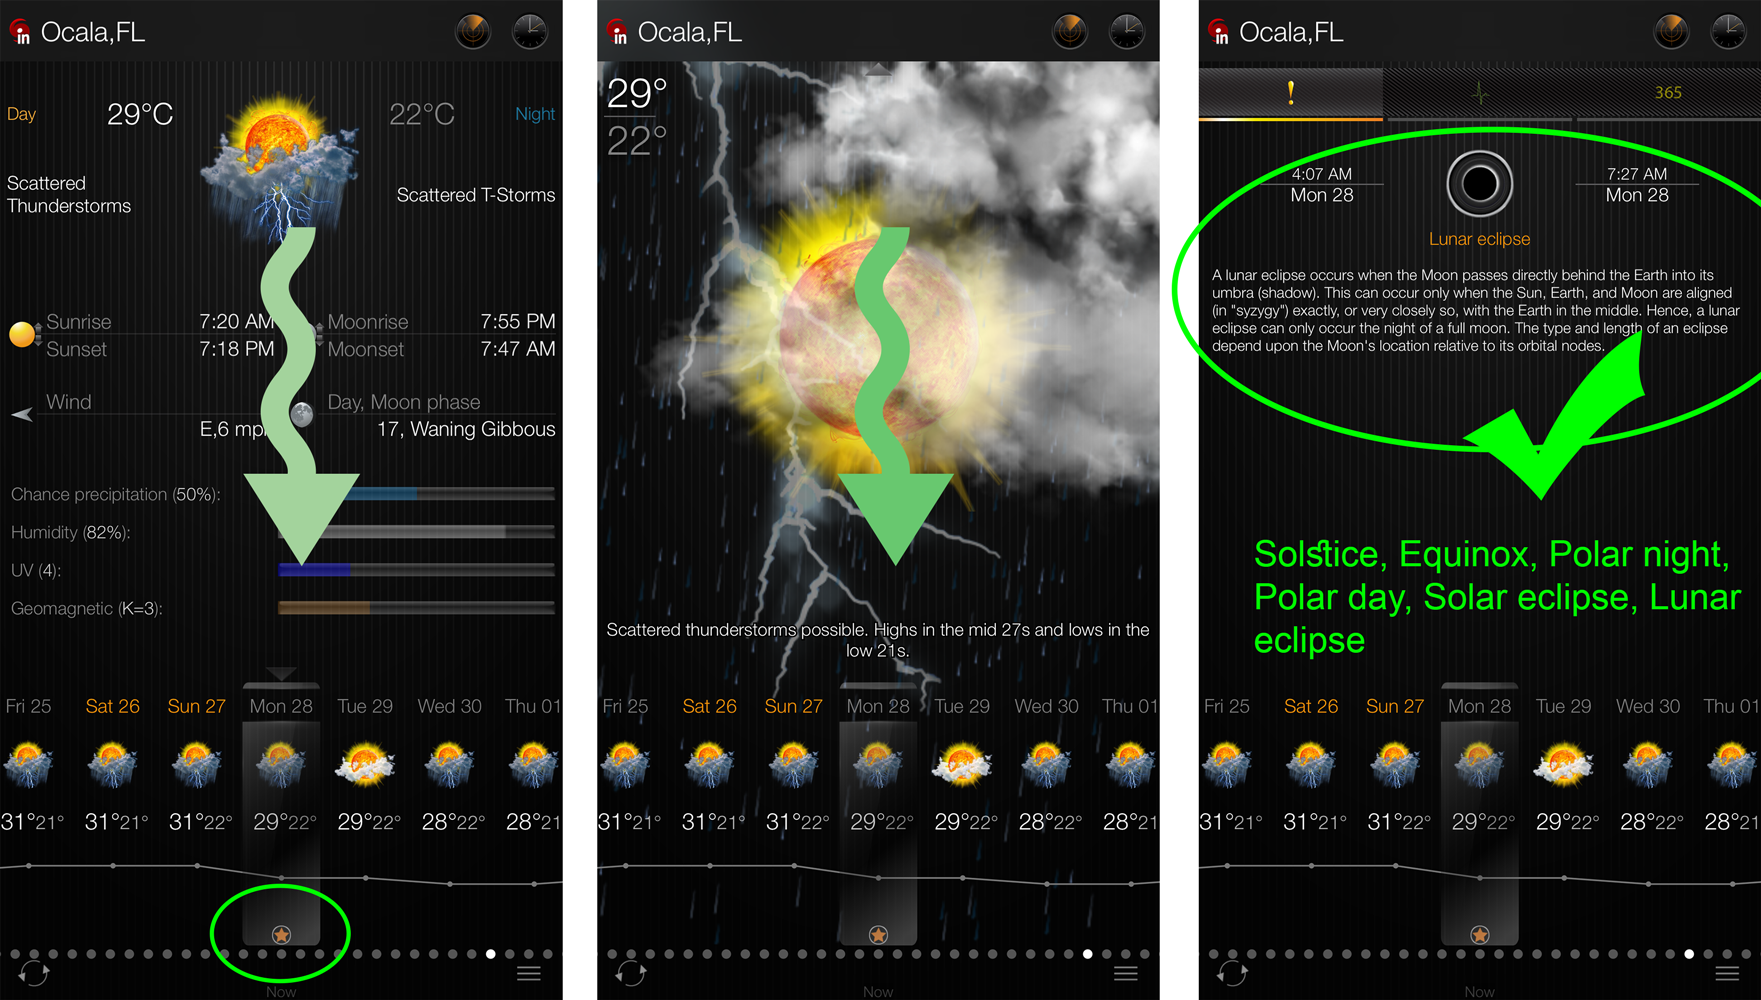 PUSH Notifications about important weather events for iPhone and iPad: Solstice, Equinox, Sun eclipse, Moon eclipse, Polar day, Polar night.